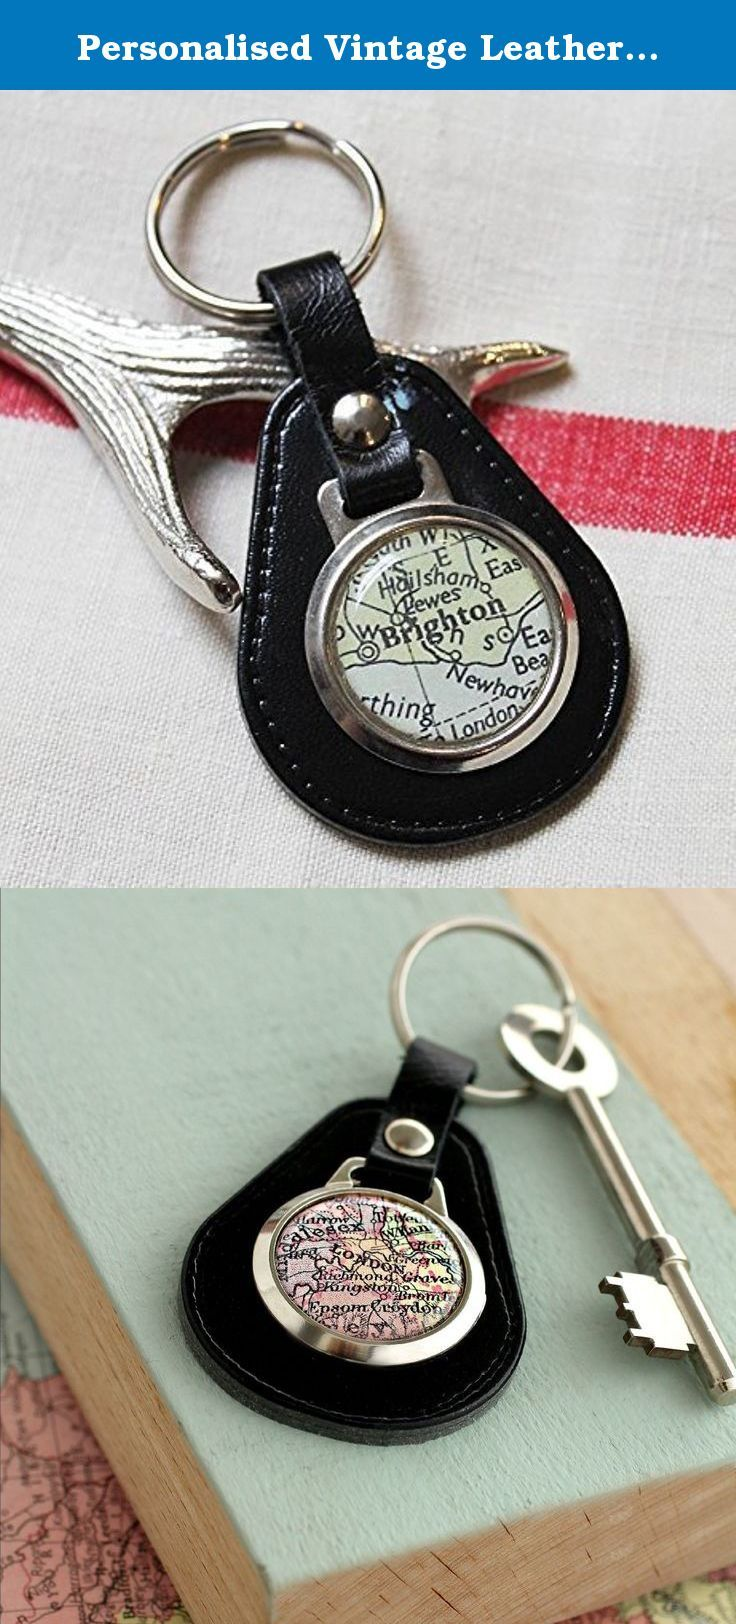 Personalised Vintage Leather Map Keyring. This lovely personalized vintage map keyring is the perfect gift! Inspired by the vintage MG keyrings we set about creating a vintage map keyring with your favorite destination, where you got married or simply where you live. The cufflinks and necklaces have proved so popular and in our Brighton store these have always been a best seller.